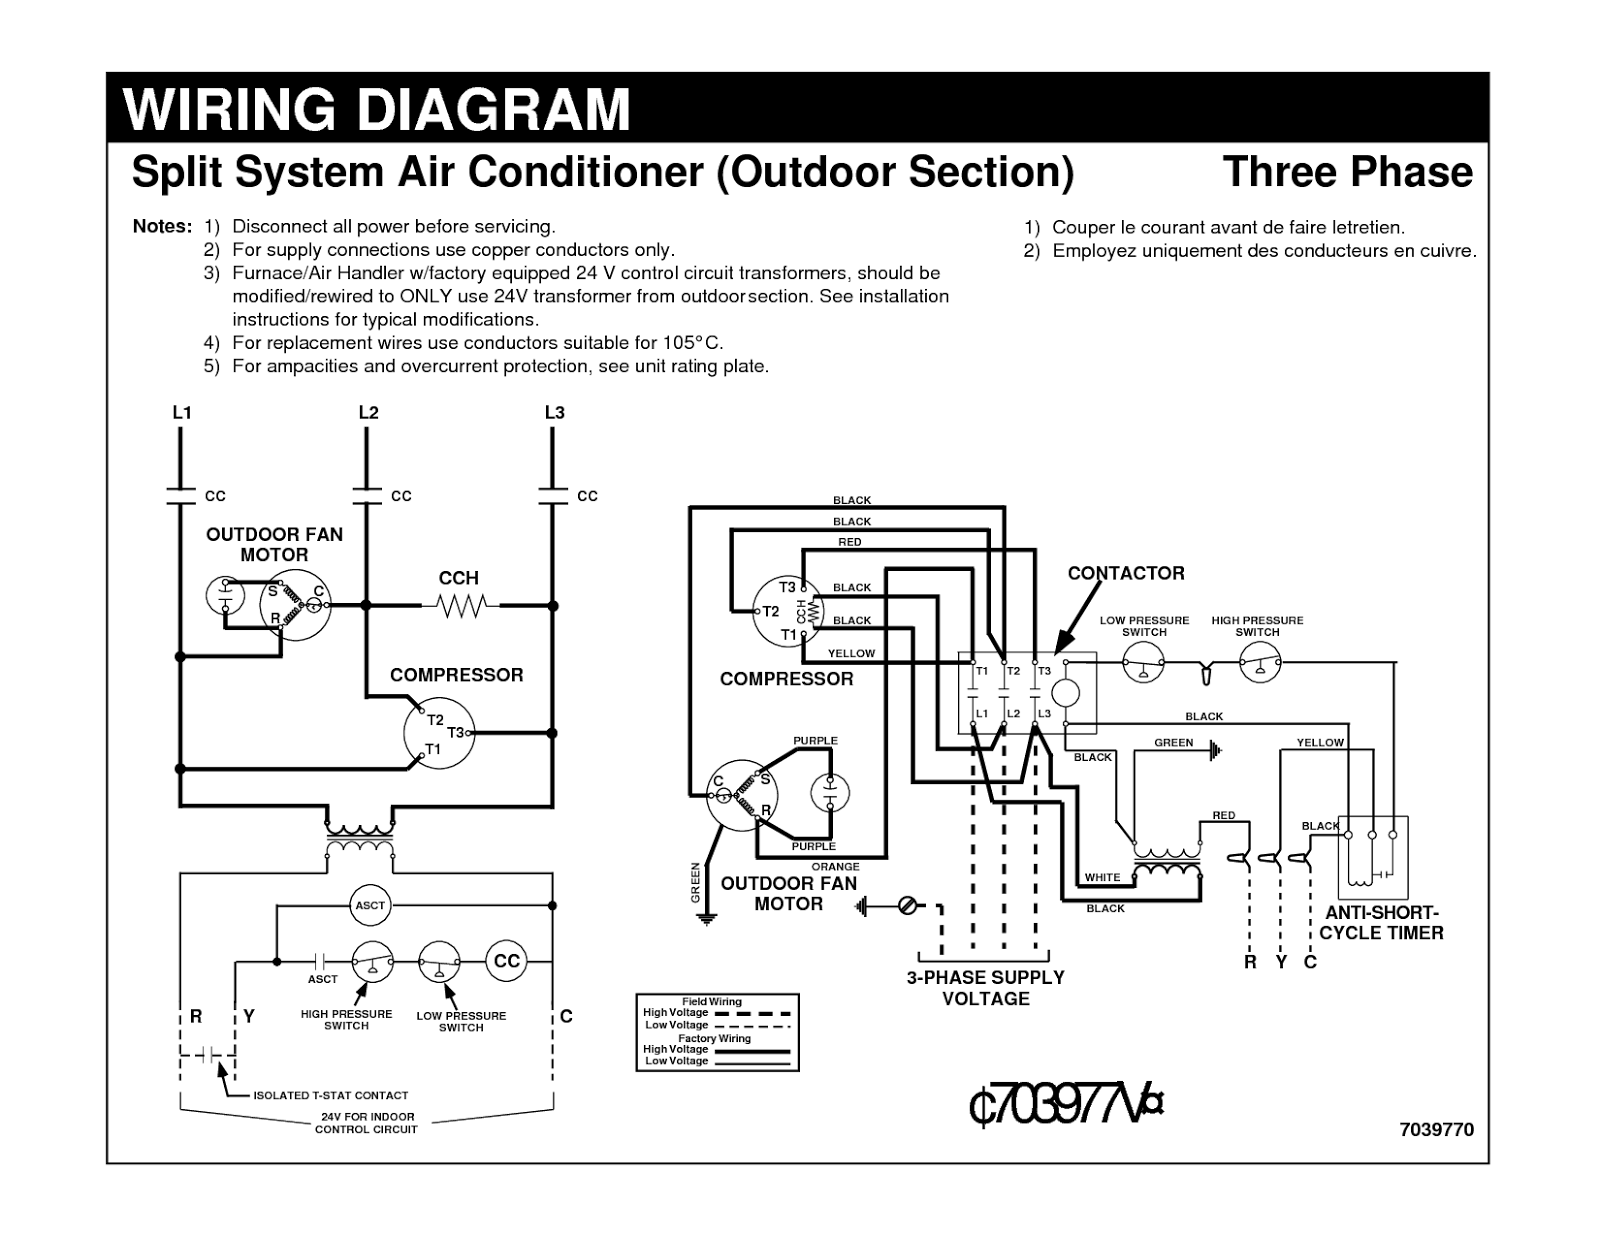 basic ac wiring diagrams wiring diagram third level home hvac systems diagrams basic ac wiring diagrams [ 1600 x 1236 Pixel ]